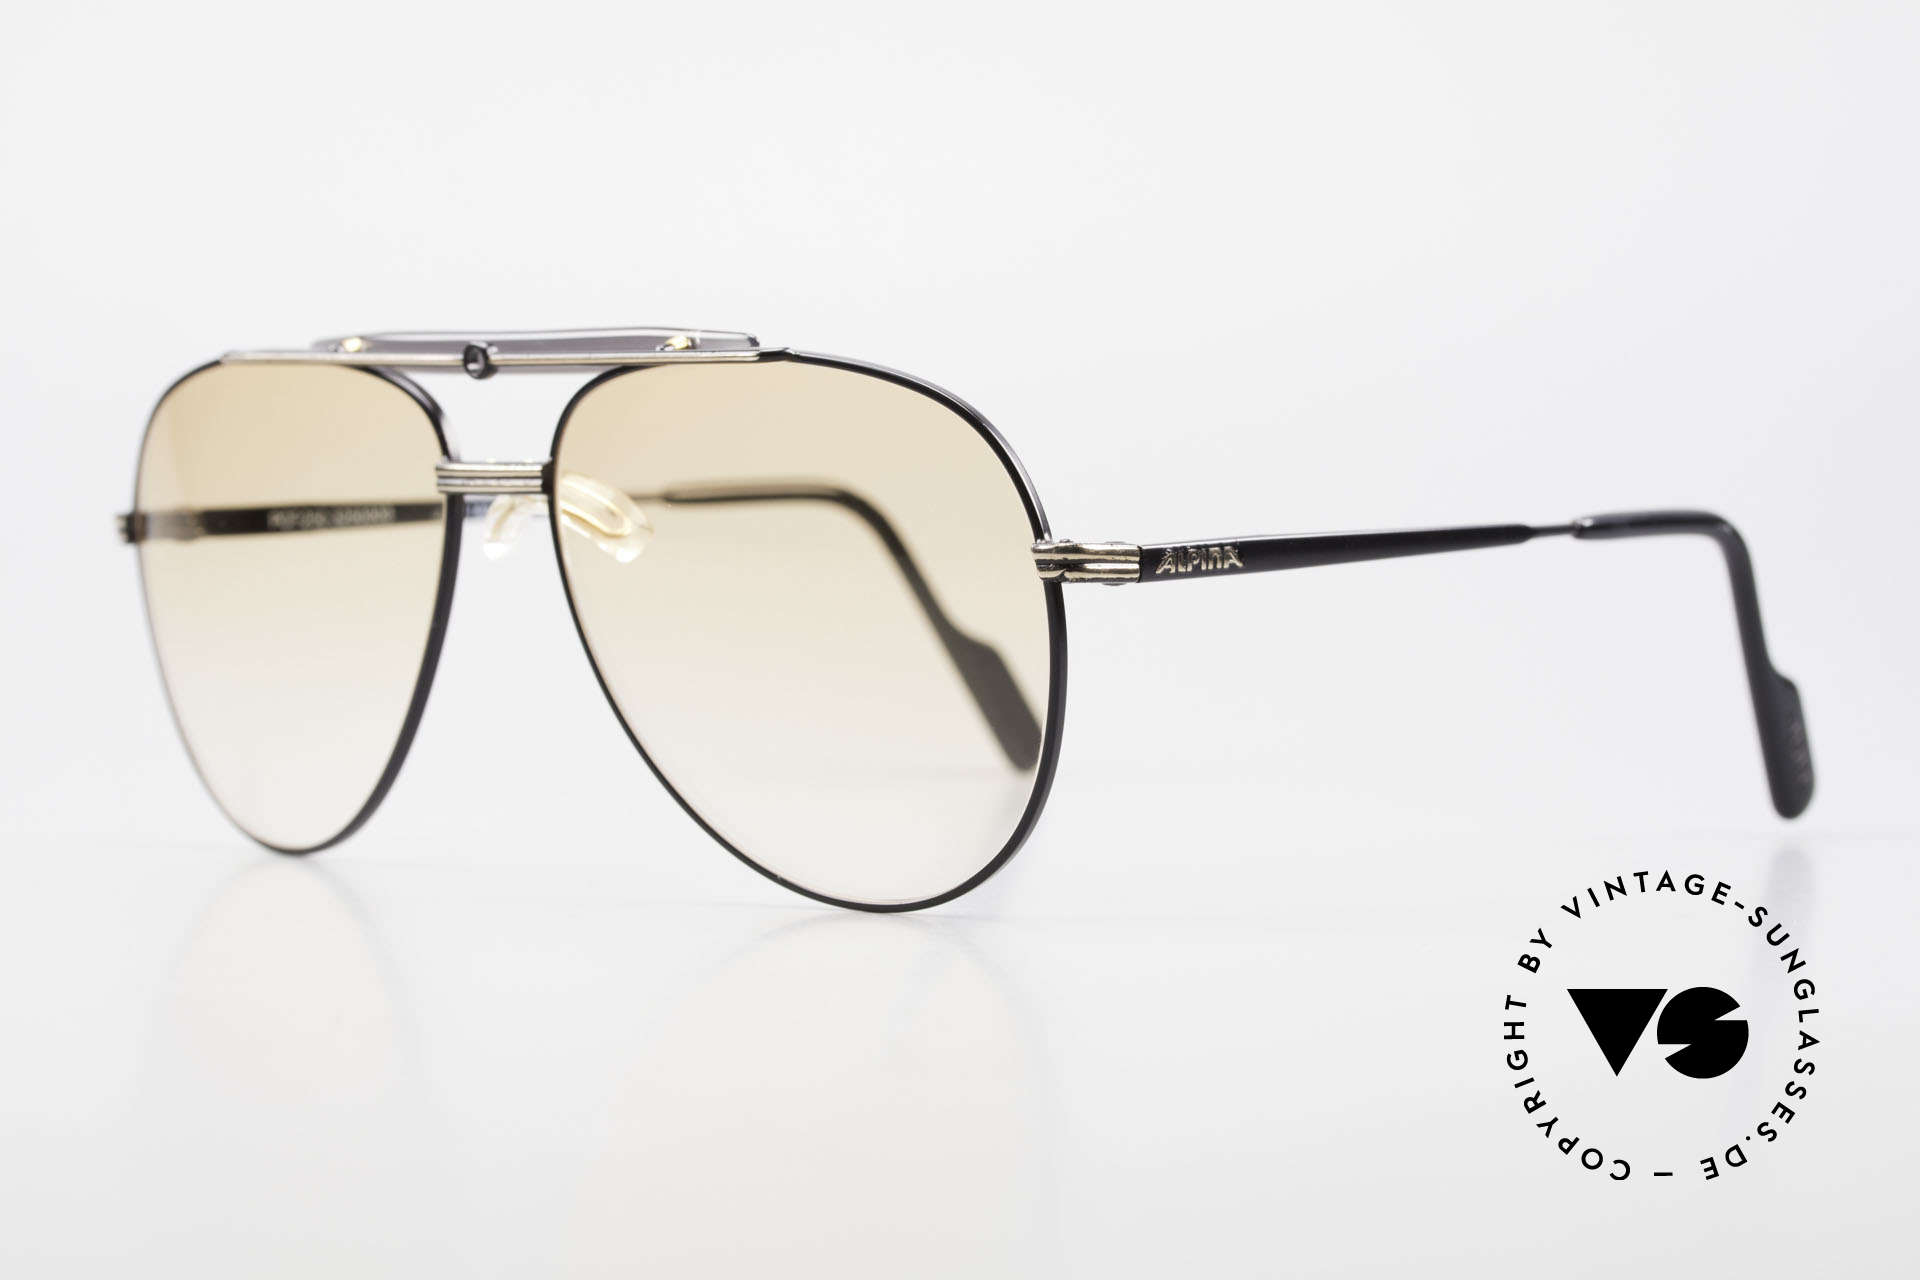 Alpina PCF 250 Sporty 90's Aviator Sunglasses, orange-gradient lenses (also wearable at night), Made for Men